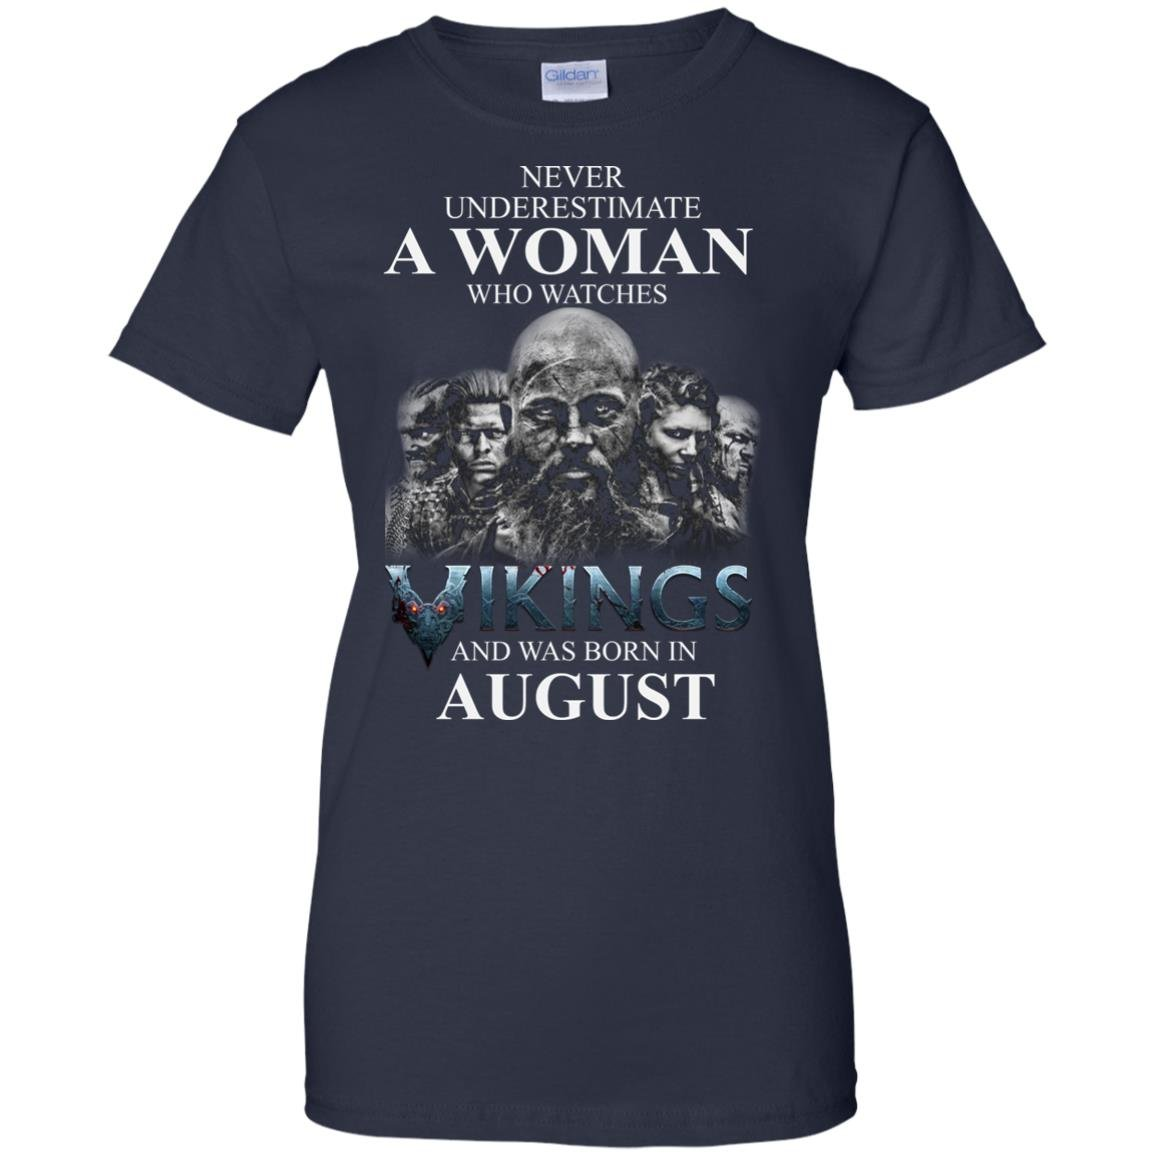 image 1278 - Never Underestimate A woman who watches Vikings and was born in August shirt